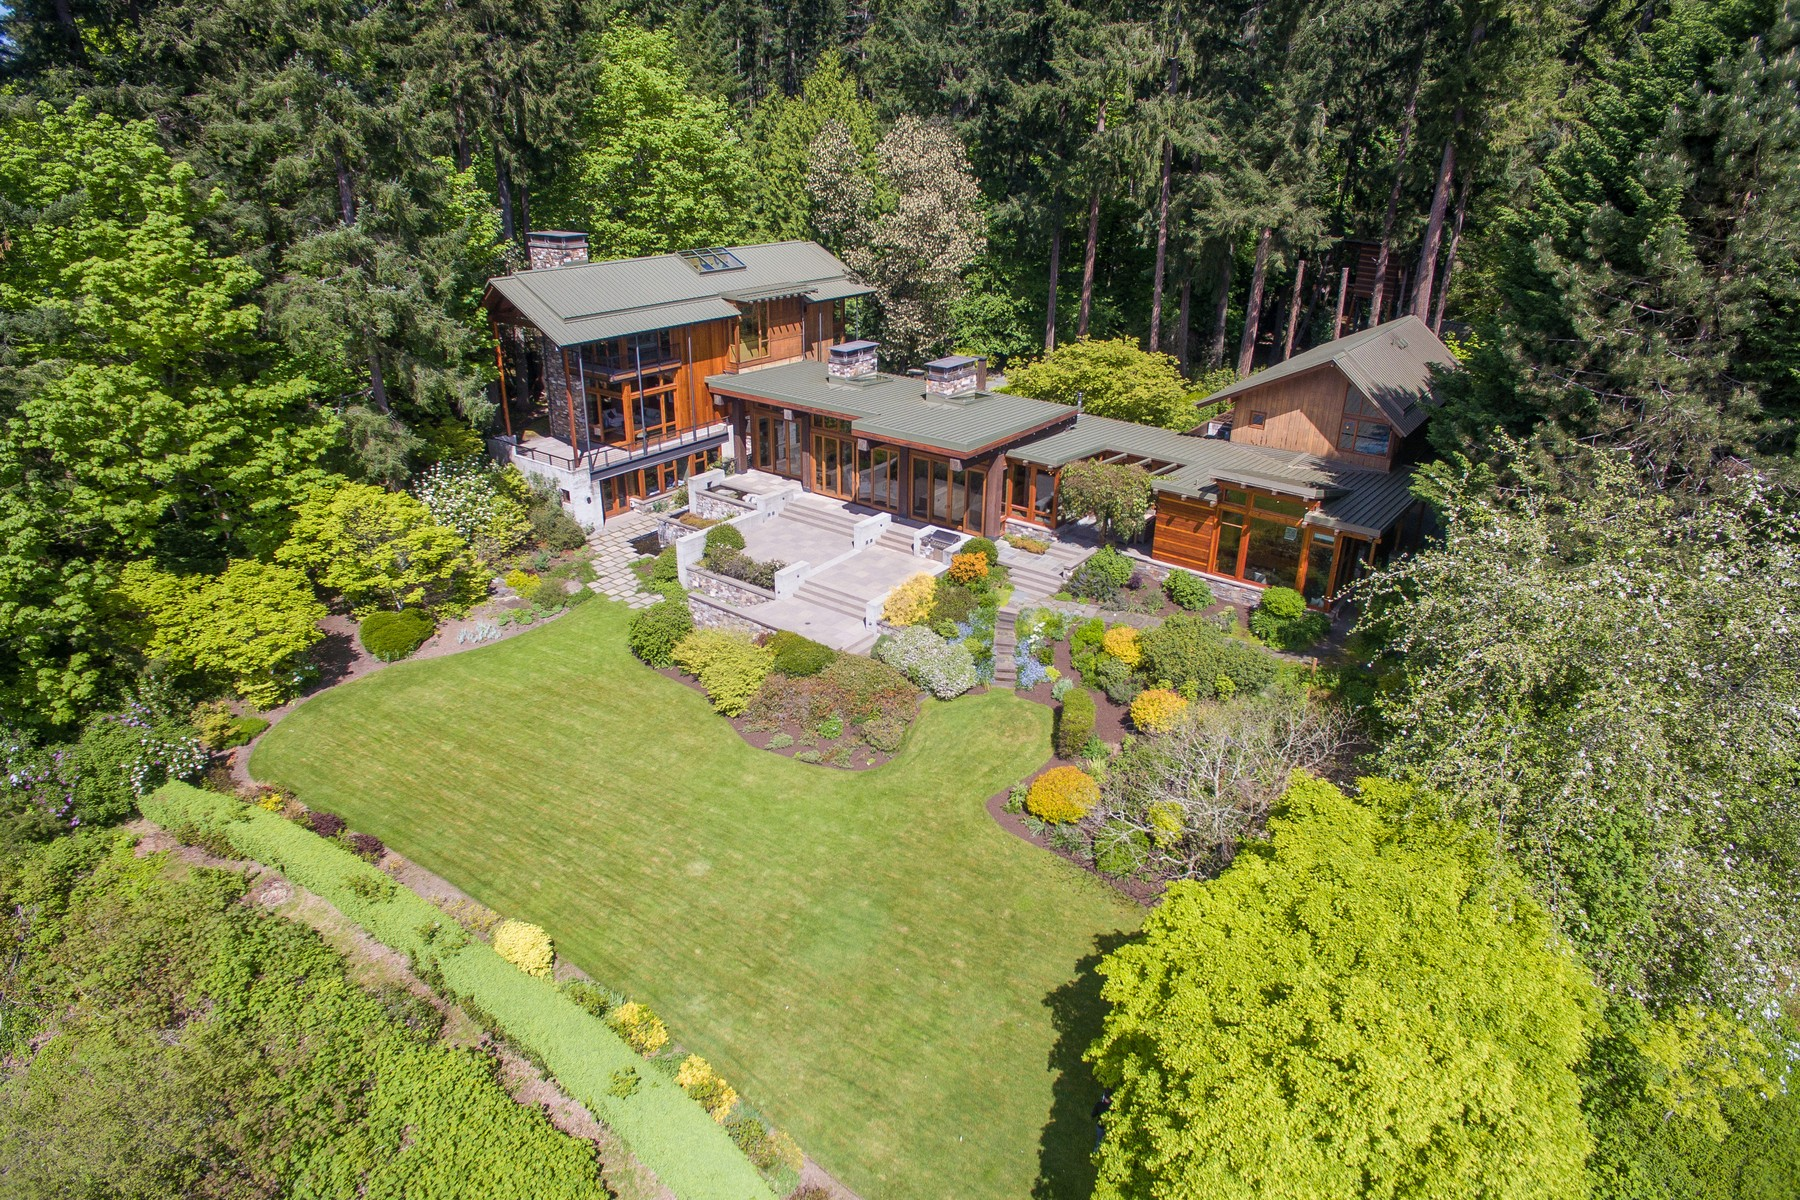 獨棟家庭住宅 為 出售 在 Picturesque waterfront estate RES5/3 Undisclosed Bainbridge Island, 華盛頓州, 98110 美國